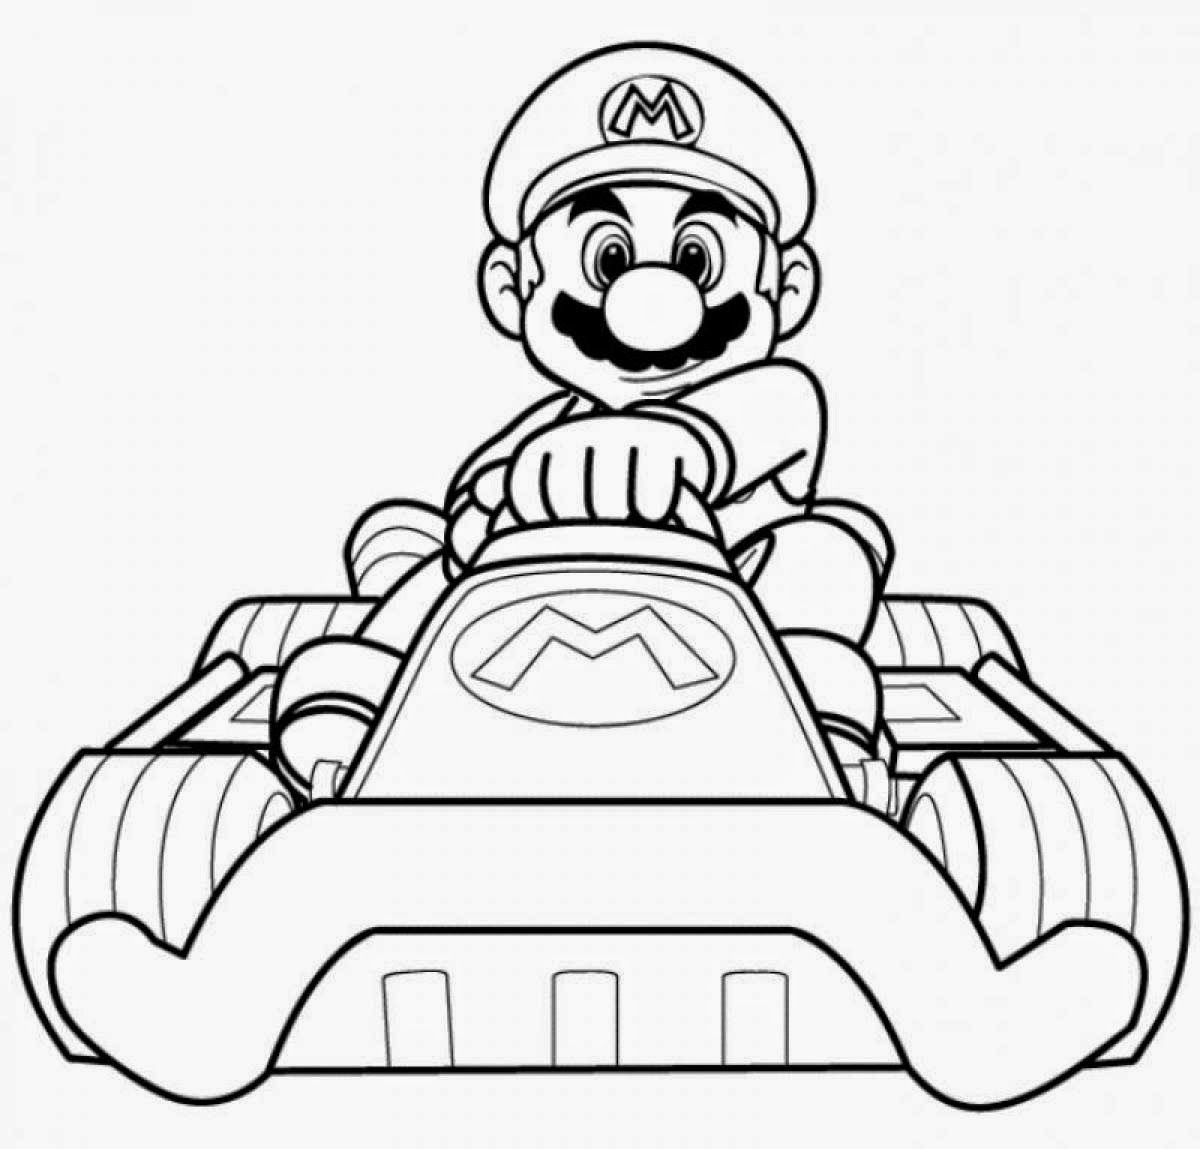 Mario Kart Wii Coloring Pages To Print - High Quality Coloring Pages ...